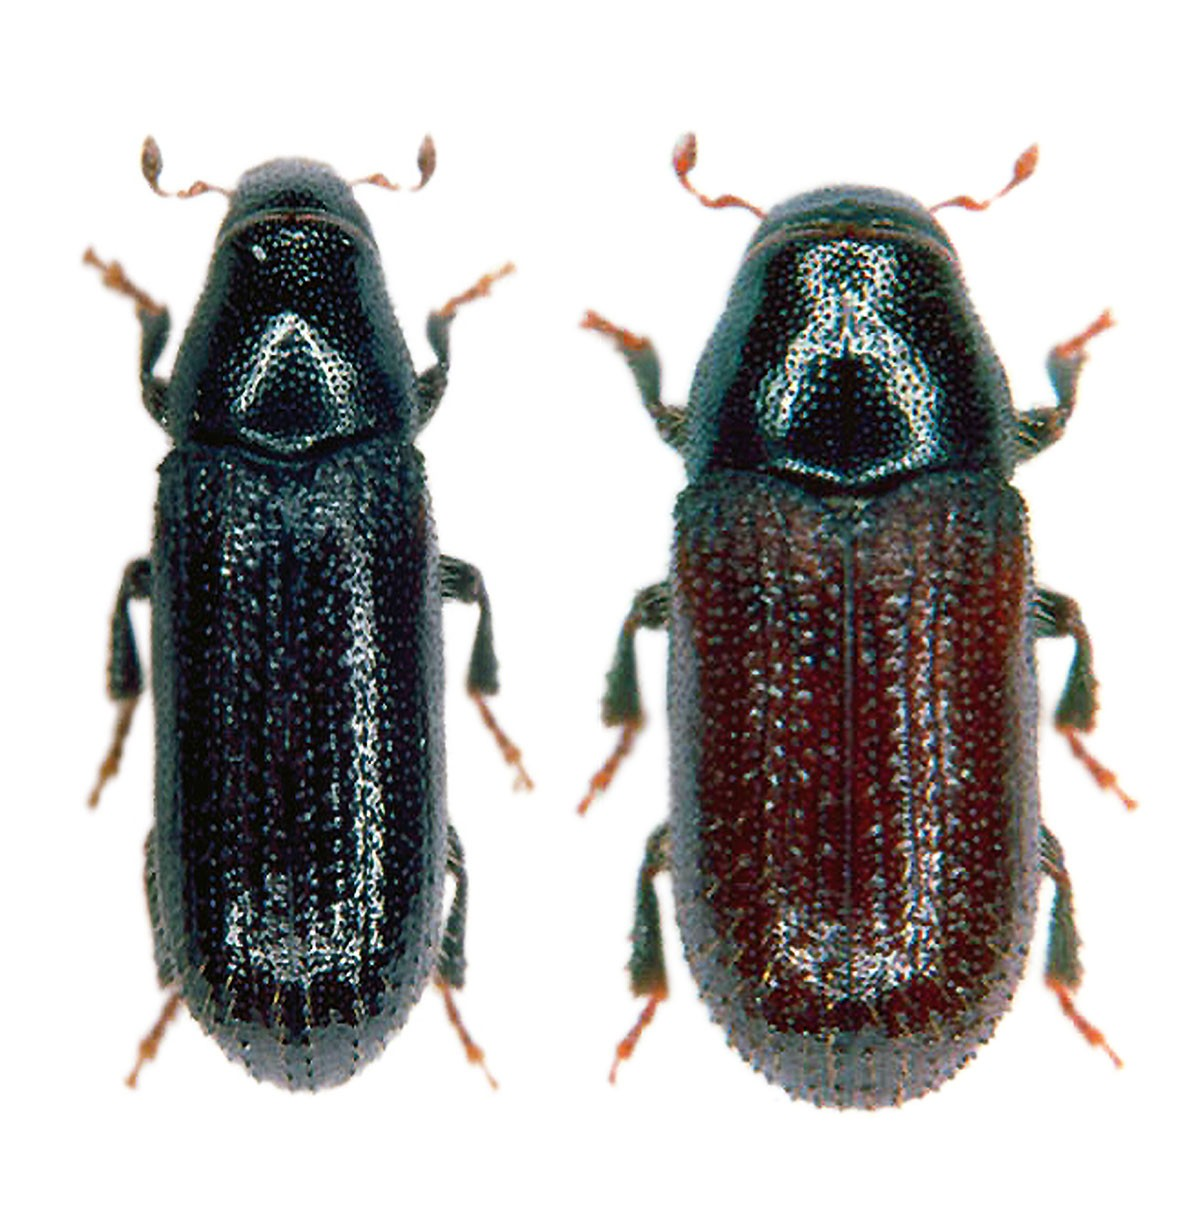 Common pine shoot beetle (Tomicus piniperda, Tomicus minor), Tomowit